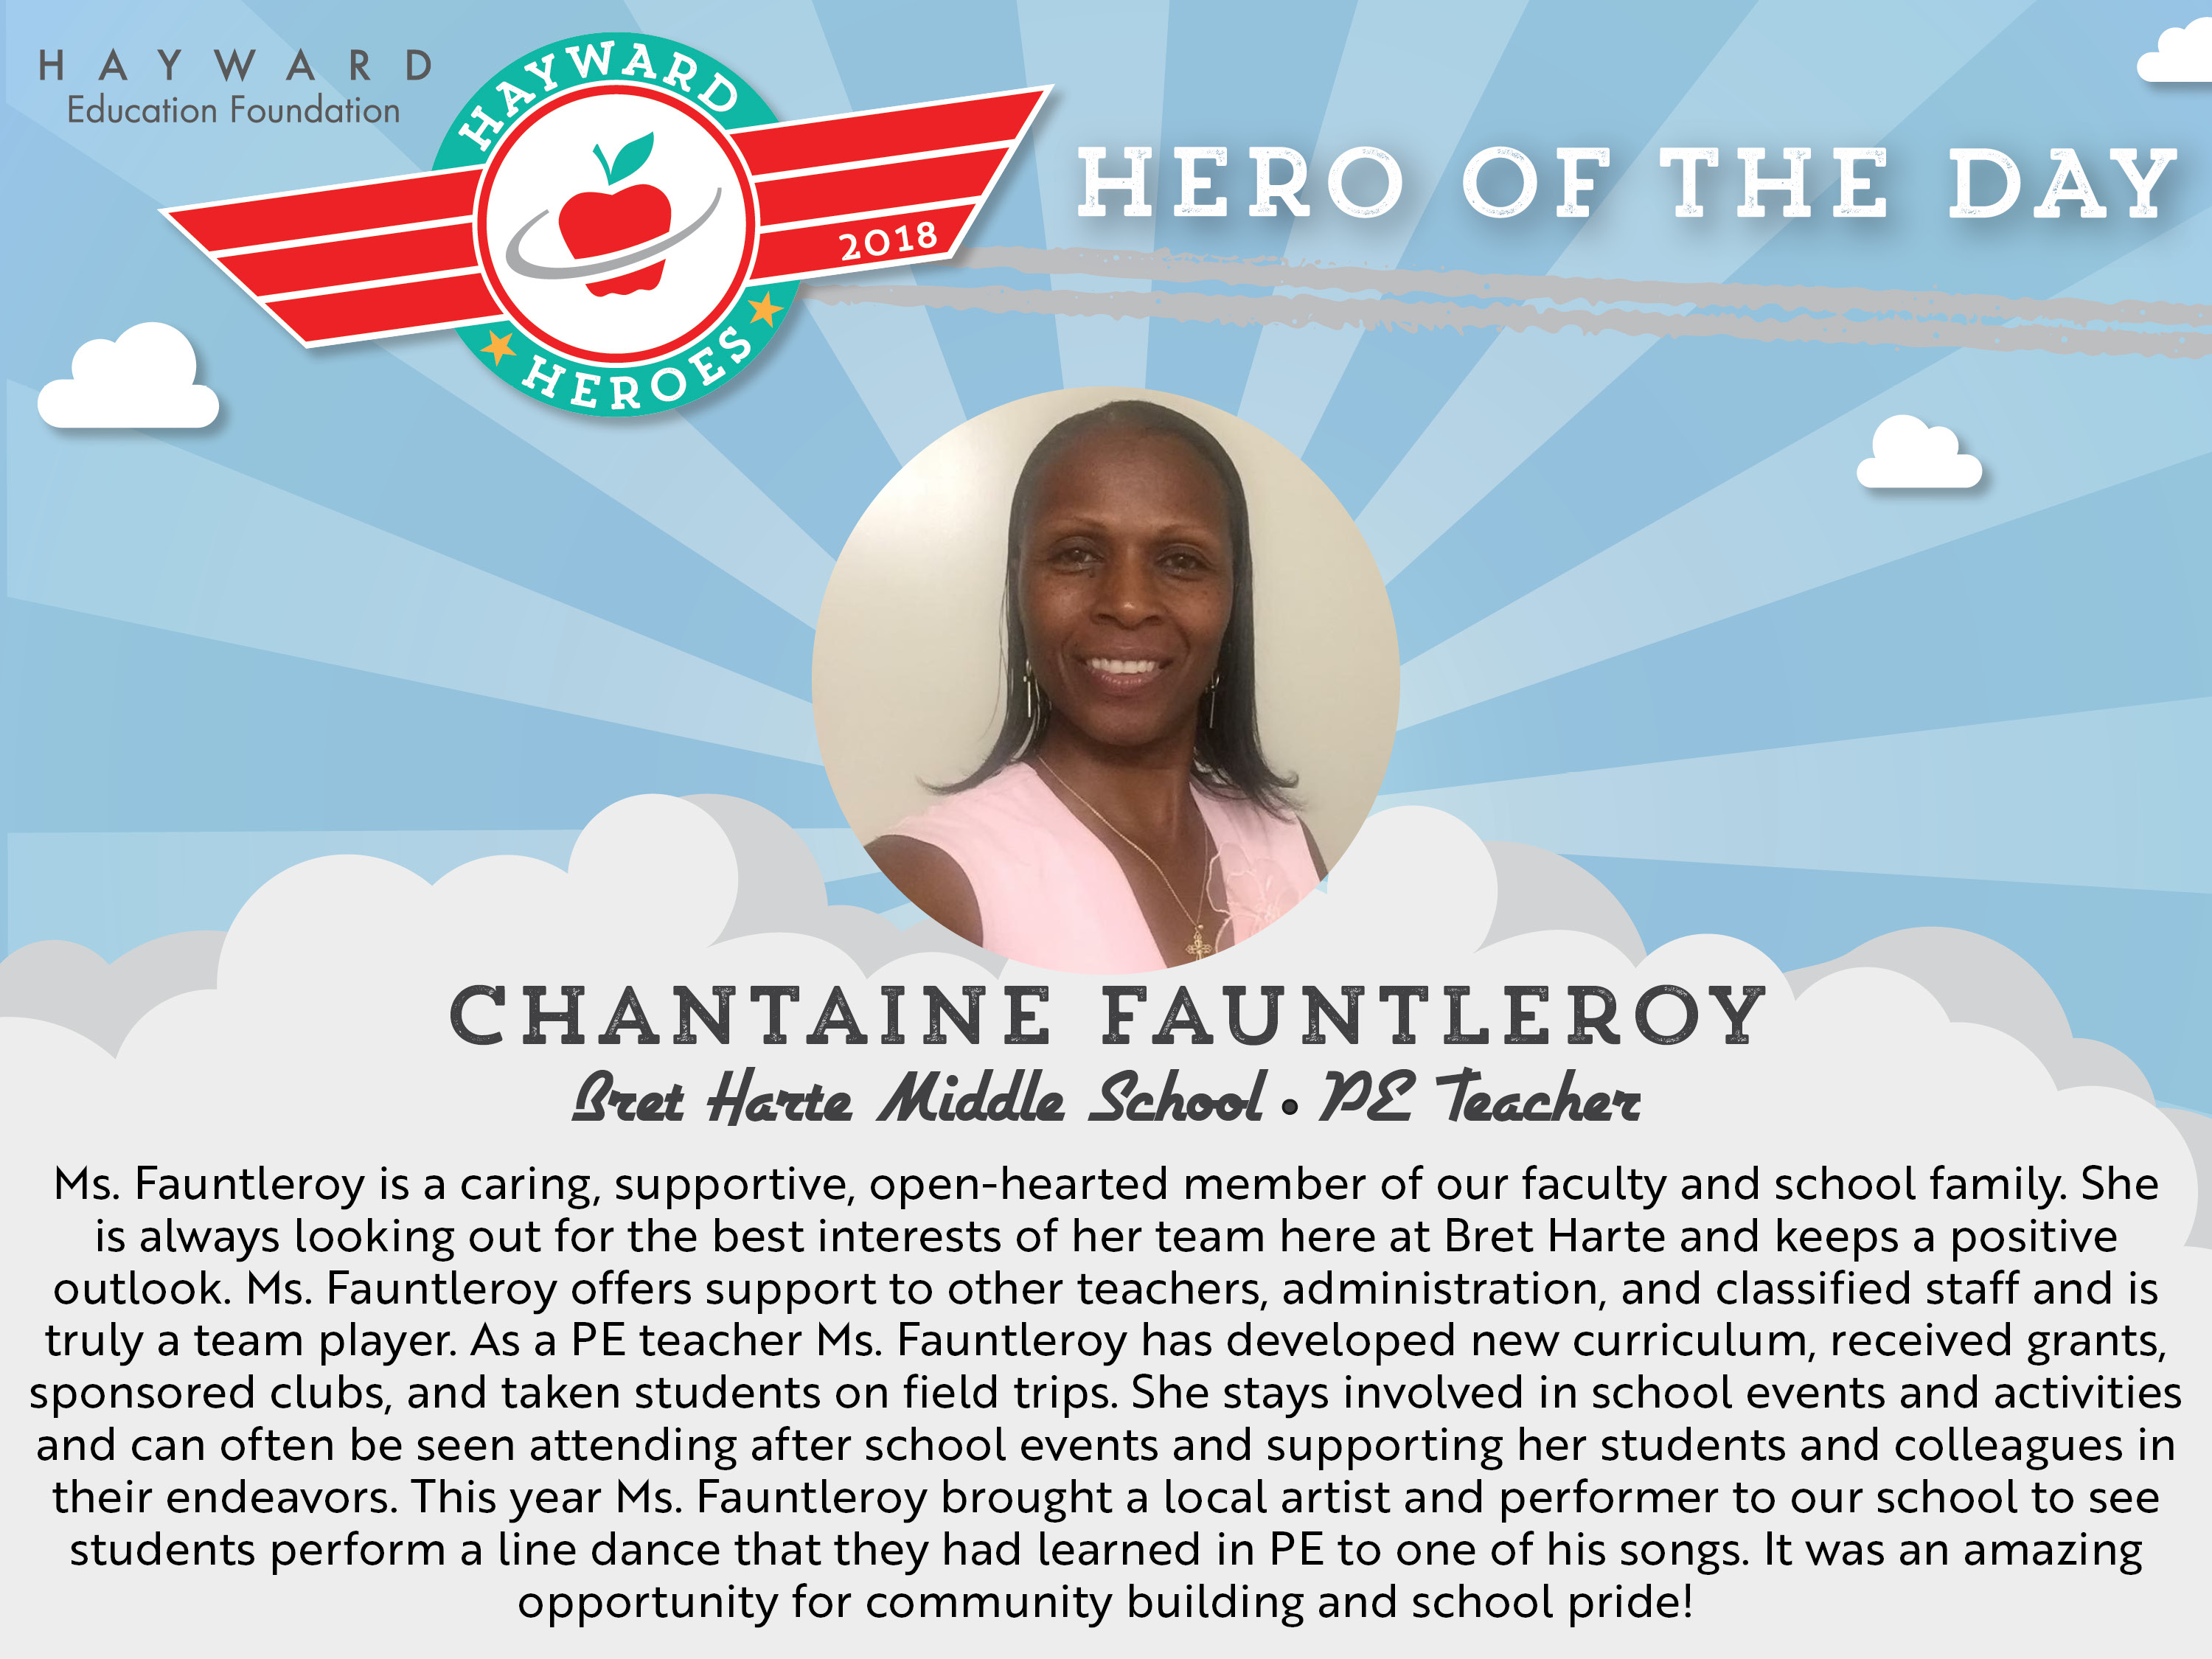 Hero a Day Slides_Fauntleroy Chantaine